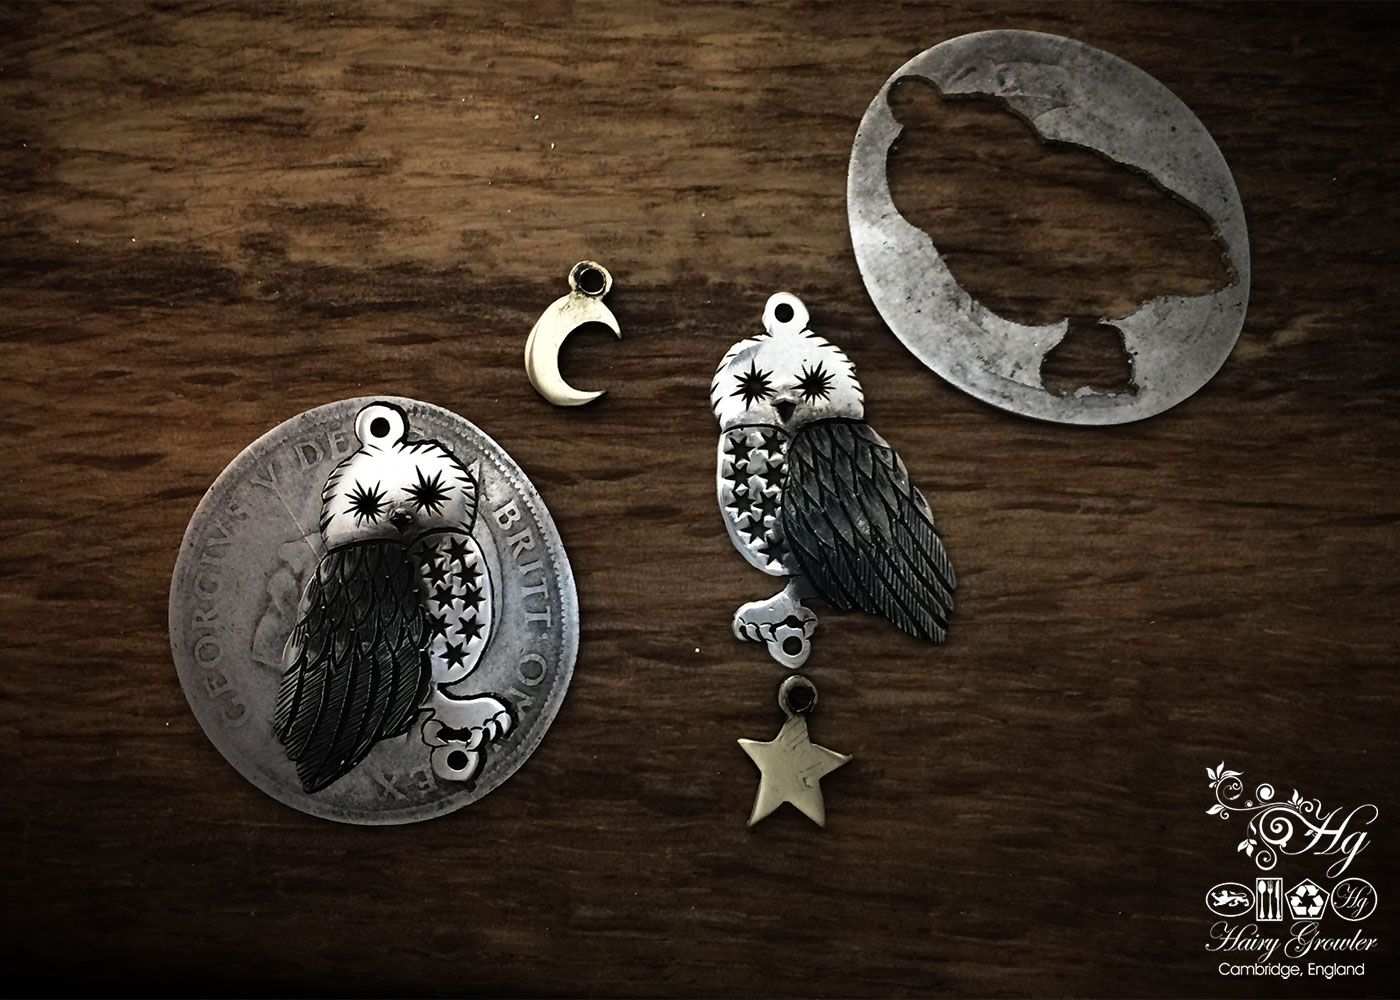 handcrafted and recycled silver Georgian shilling owl earrings made in Cambridge